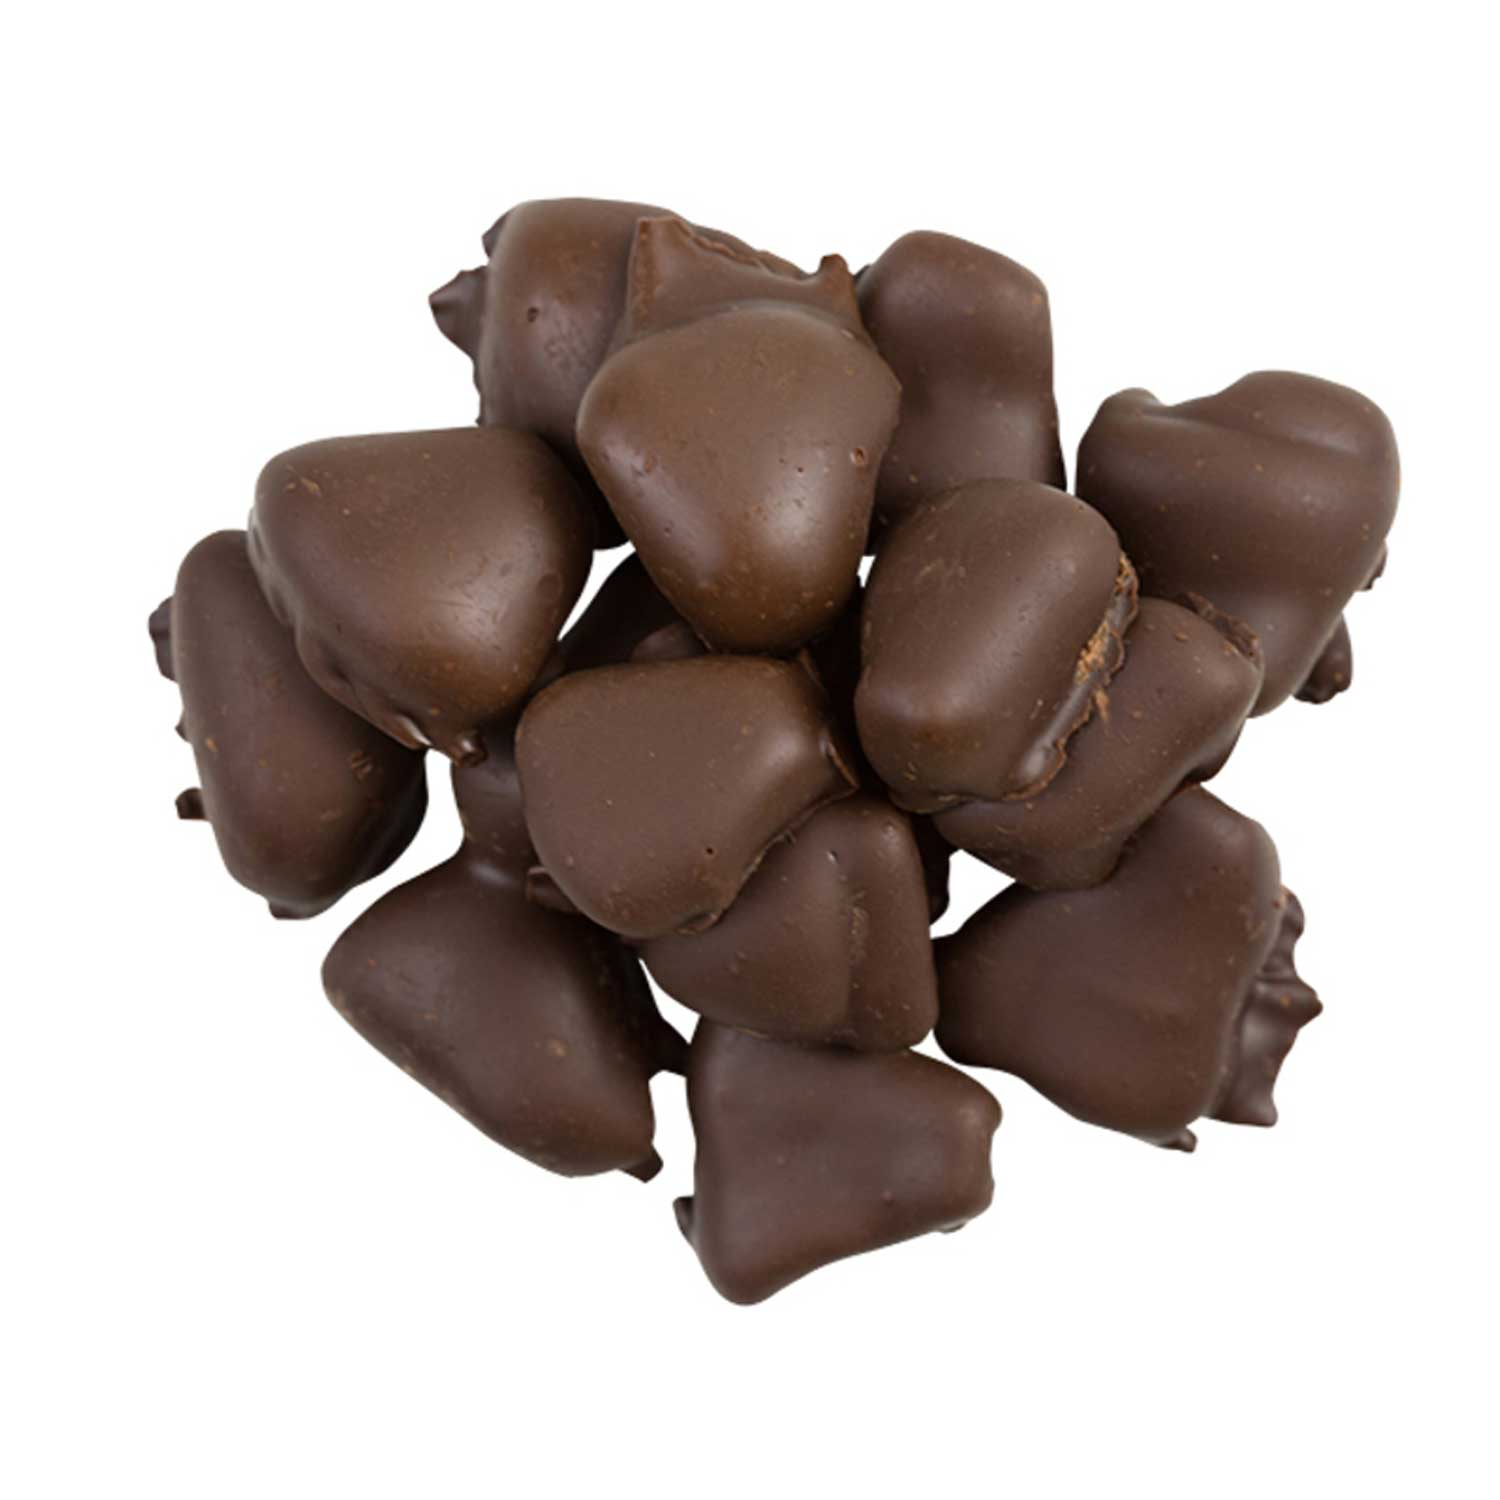 Pineapple, Chocolate Covered